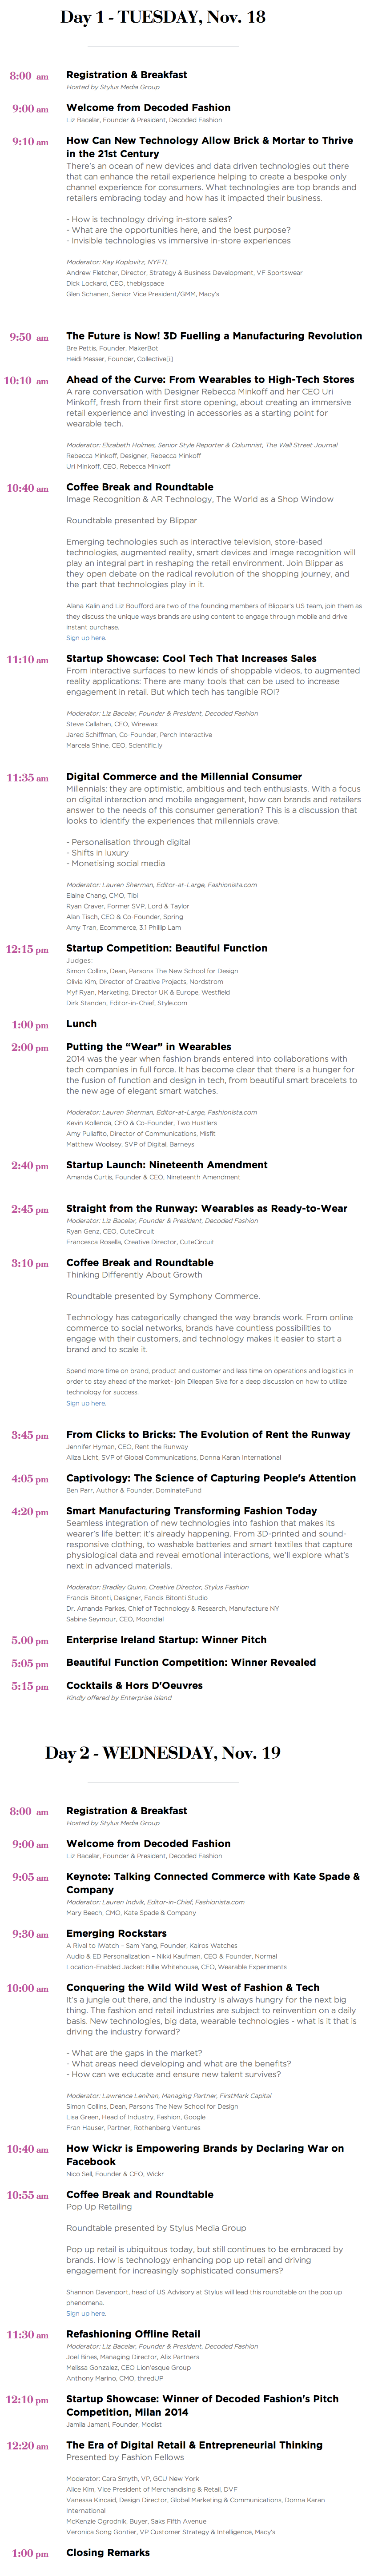 Decoded Fashion New York Summit 2014 Agenda